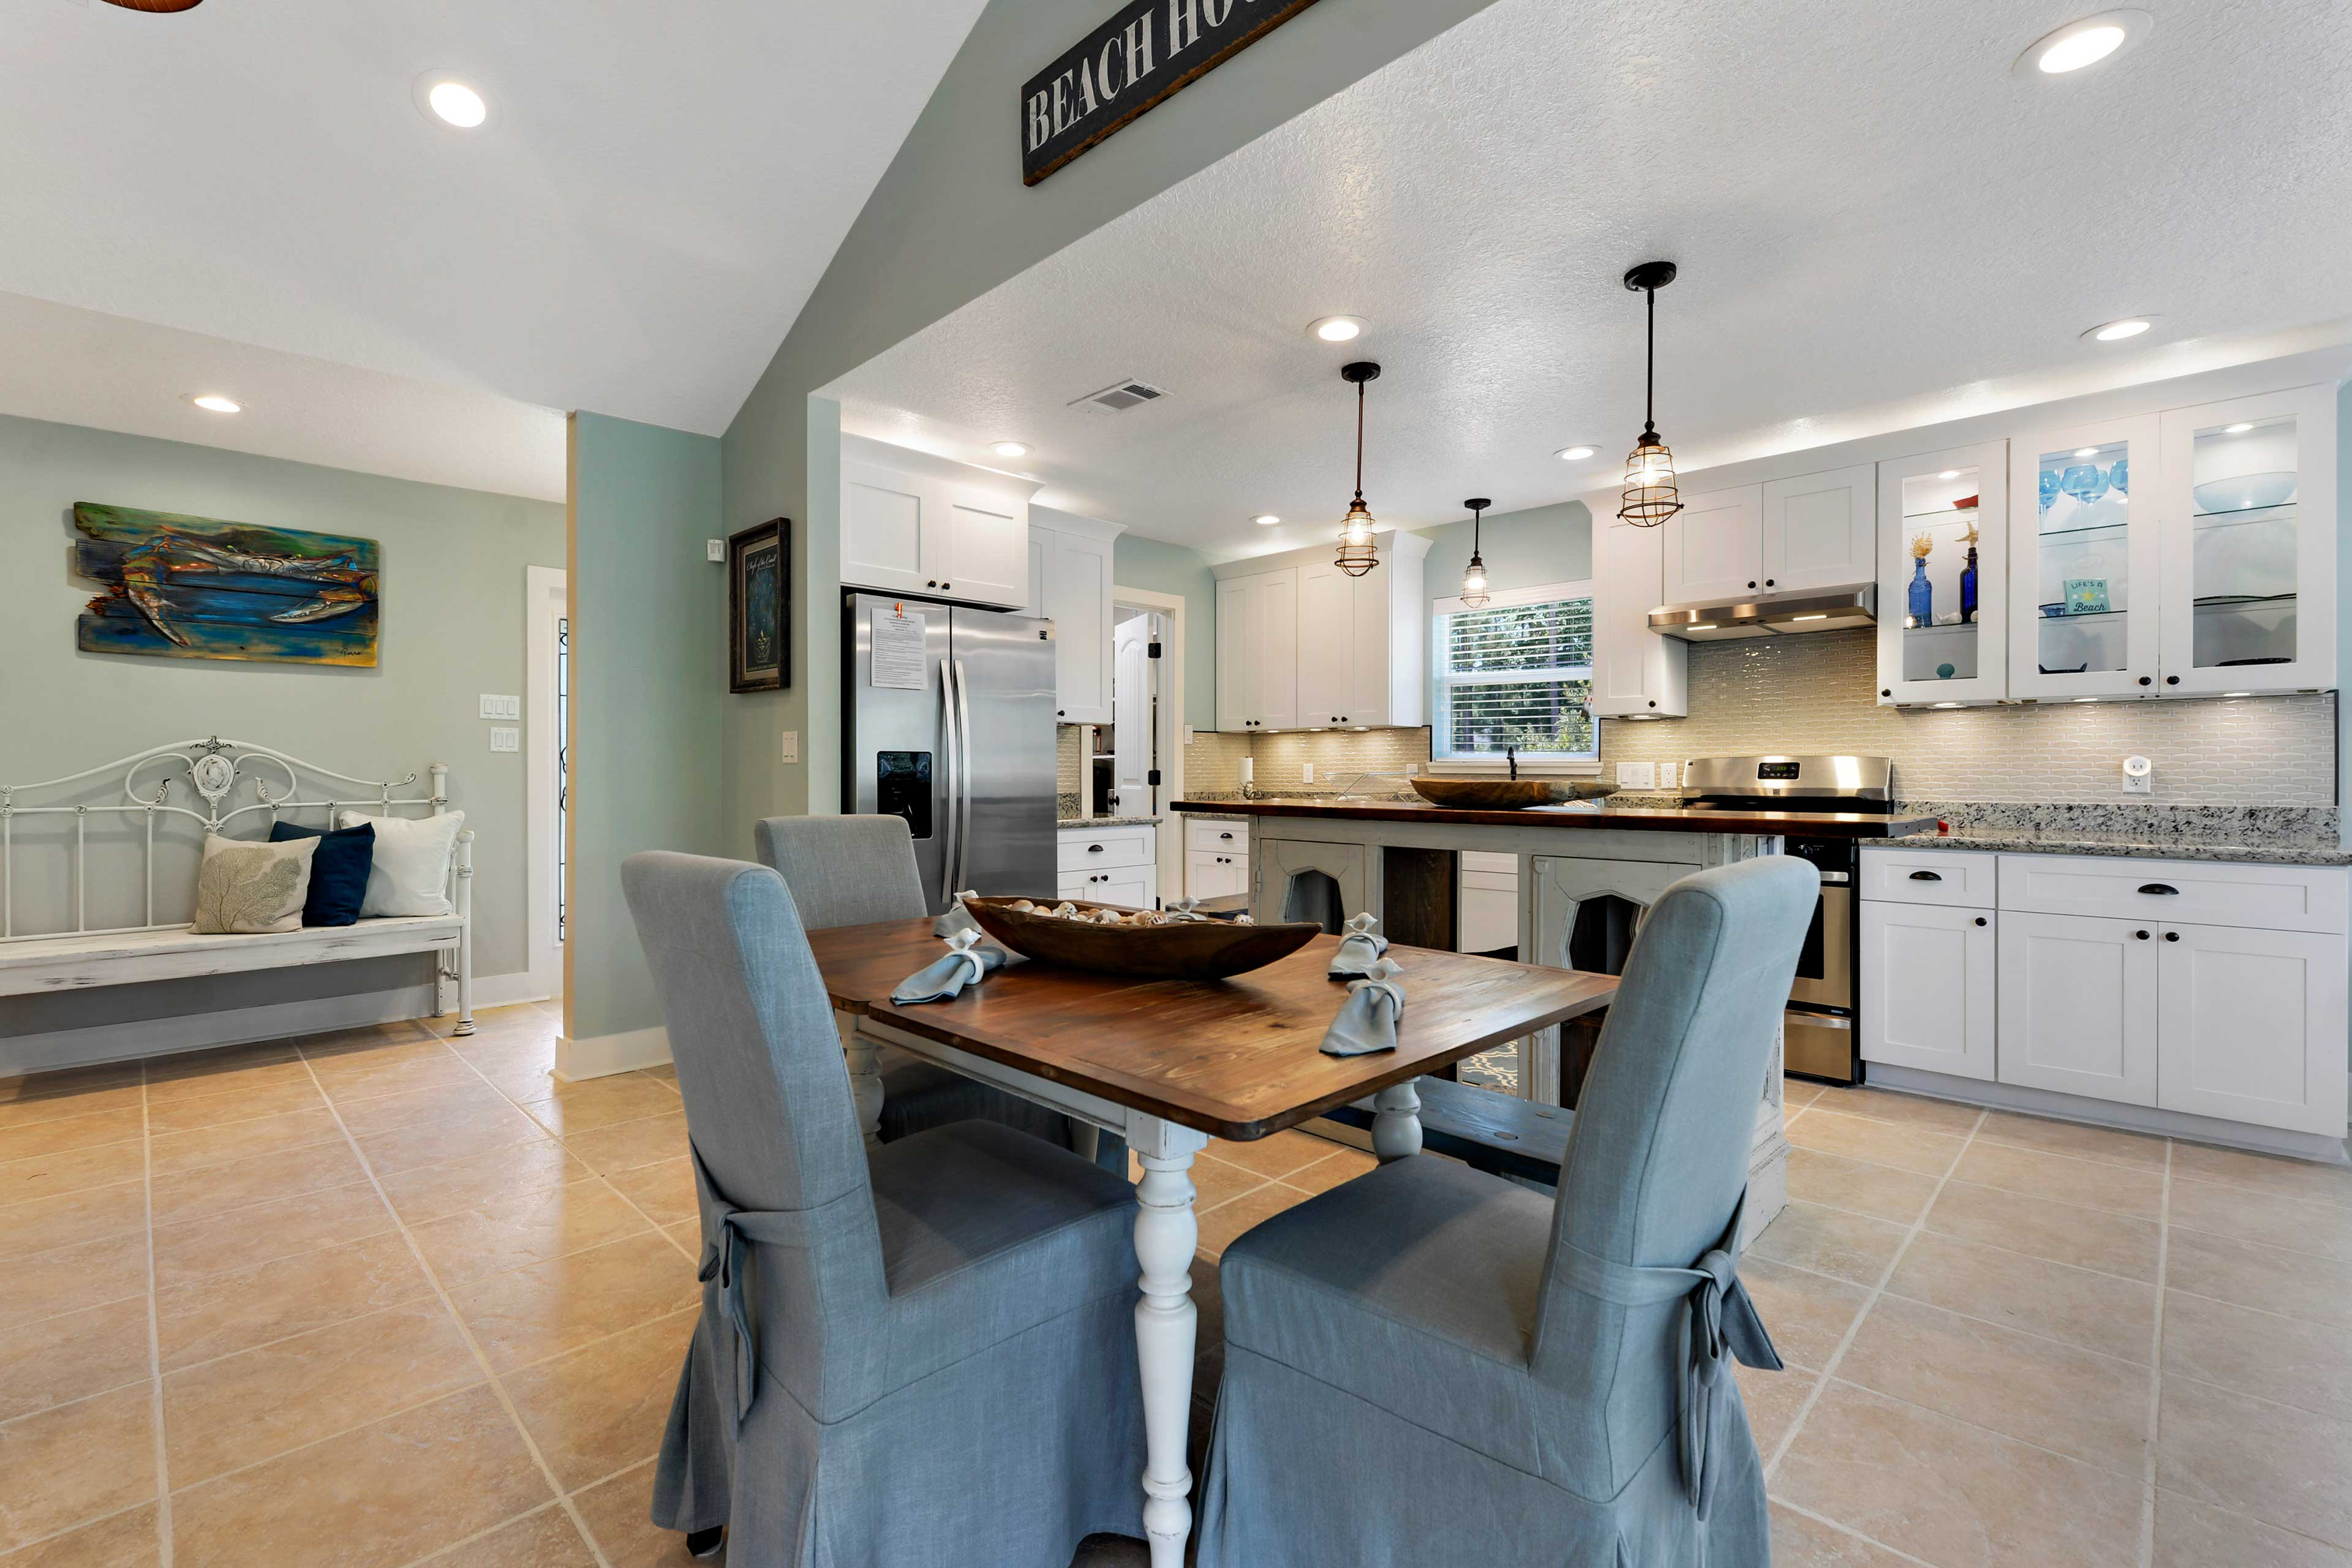 The 1,500-square-foot space can accommodate up to 8 guests.